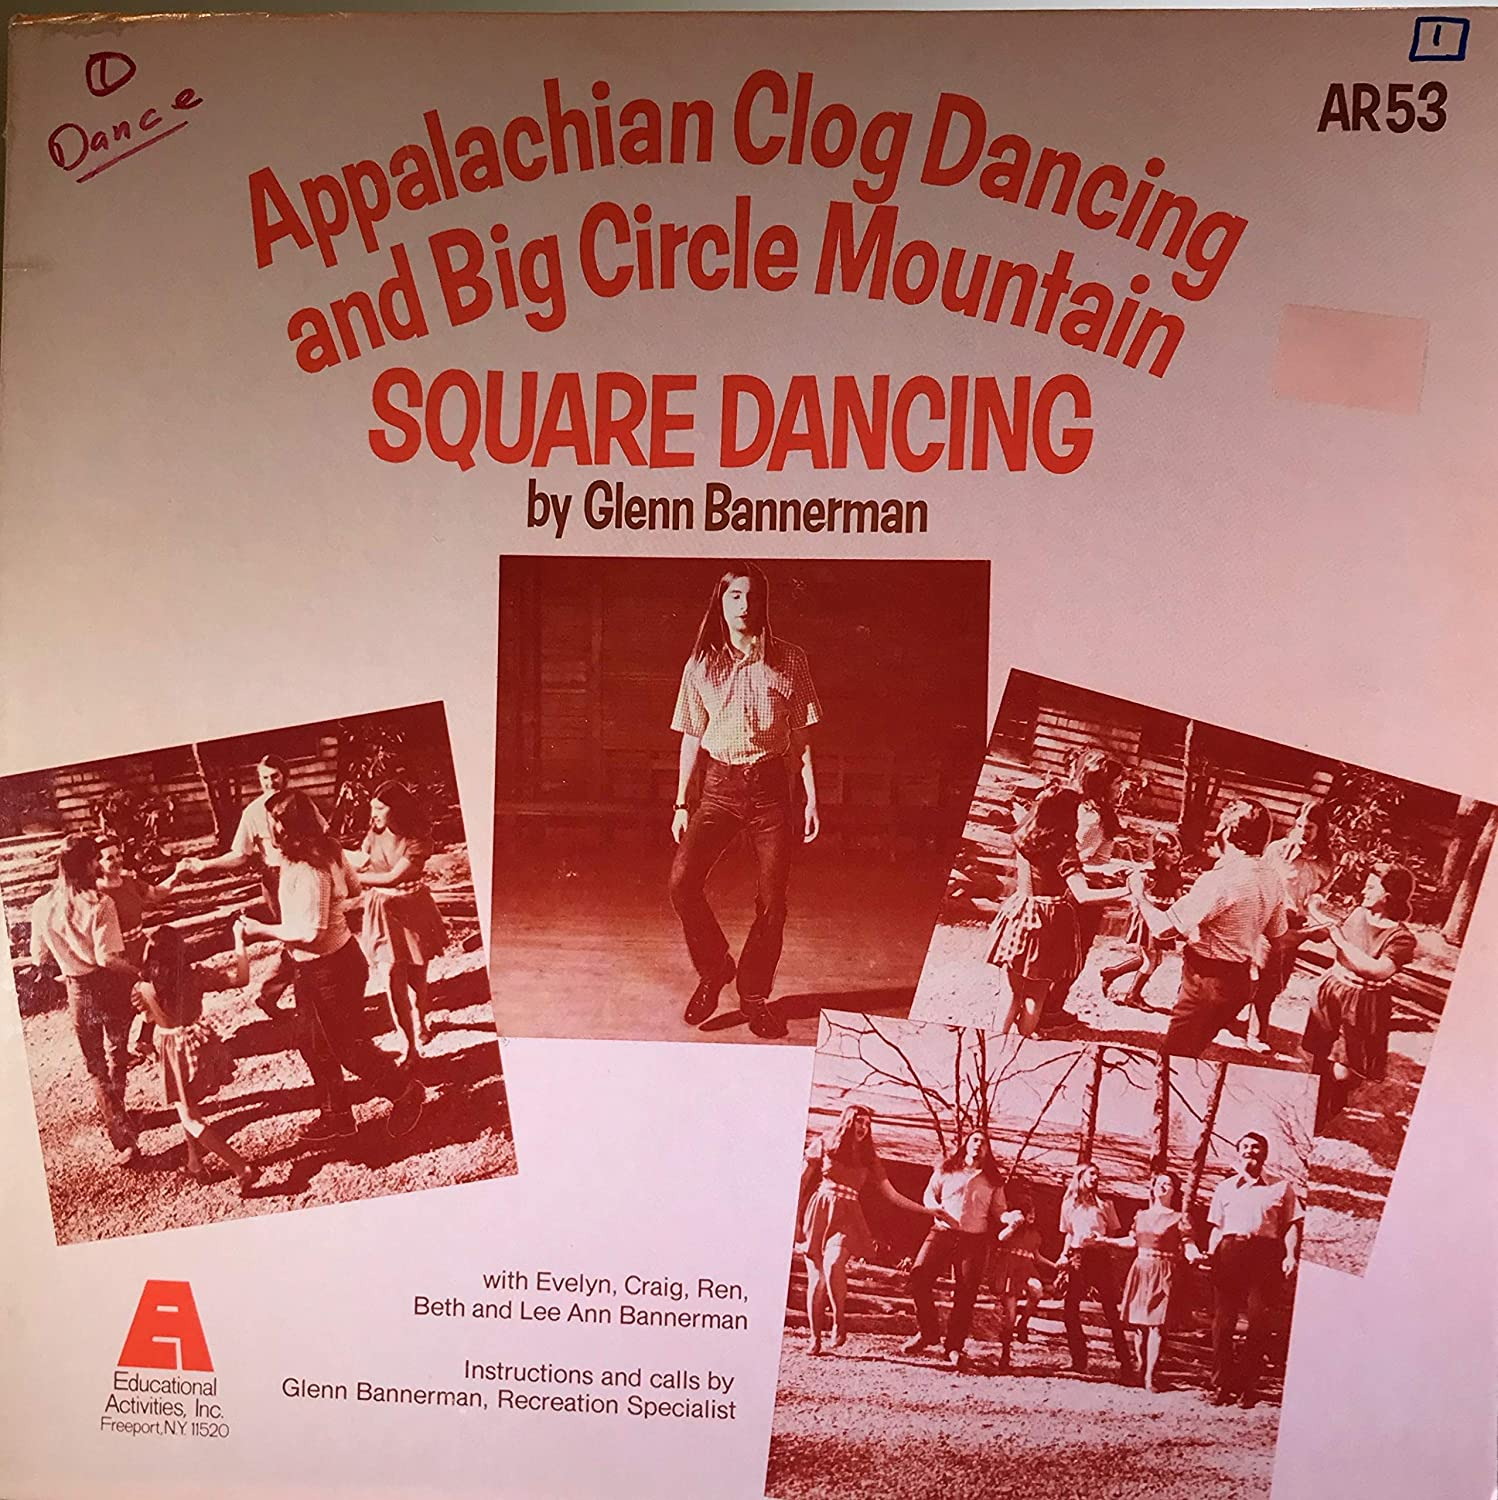 Appalachian specialty shop Clog Dancing Selling and Mountain Big Circle Square